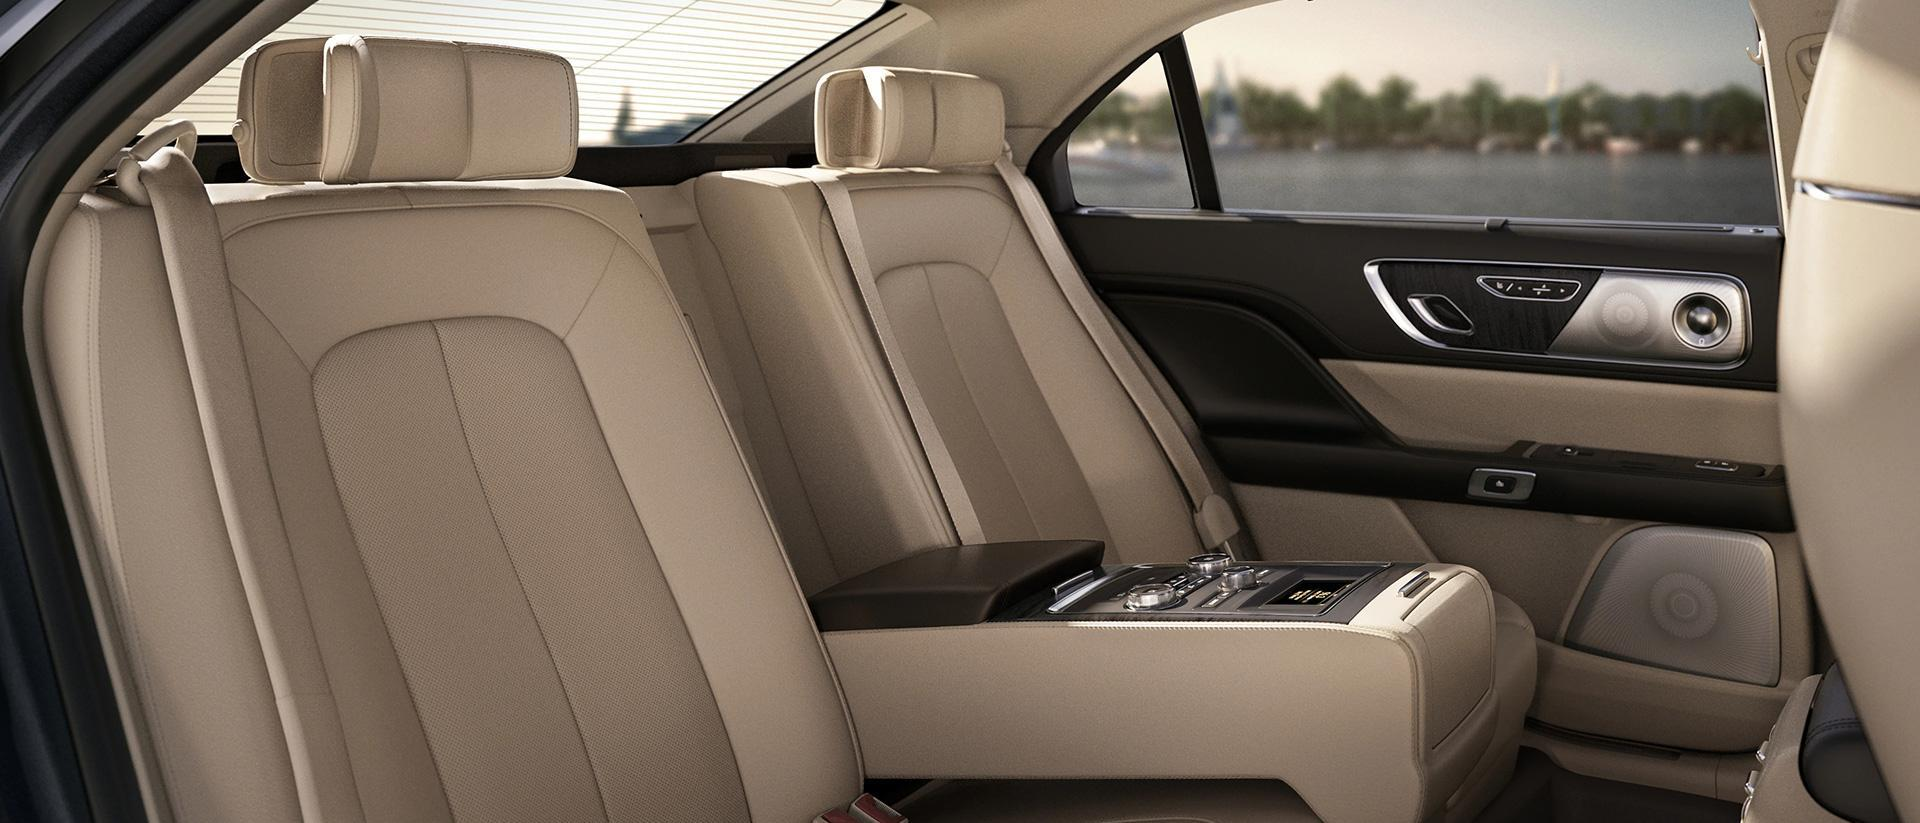 2020 Lincoln Continental   South Bay Lincoln